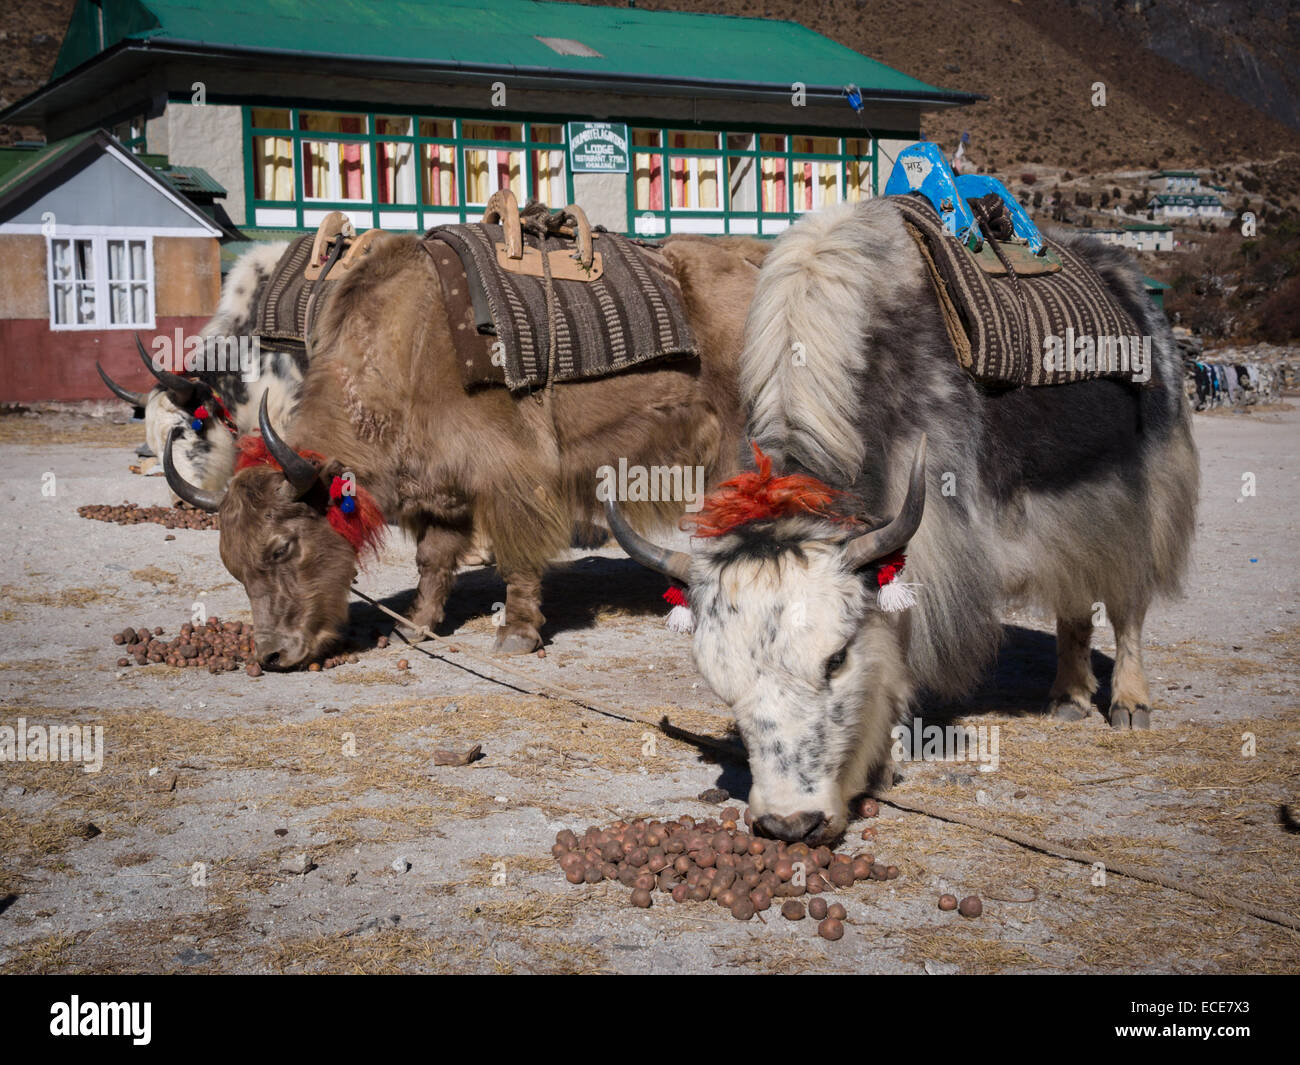 Yaks being fed potatoes in Khumjung, Khumbu region, Nepal - Stock Image